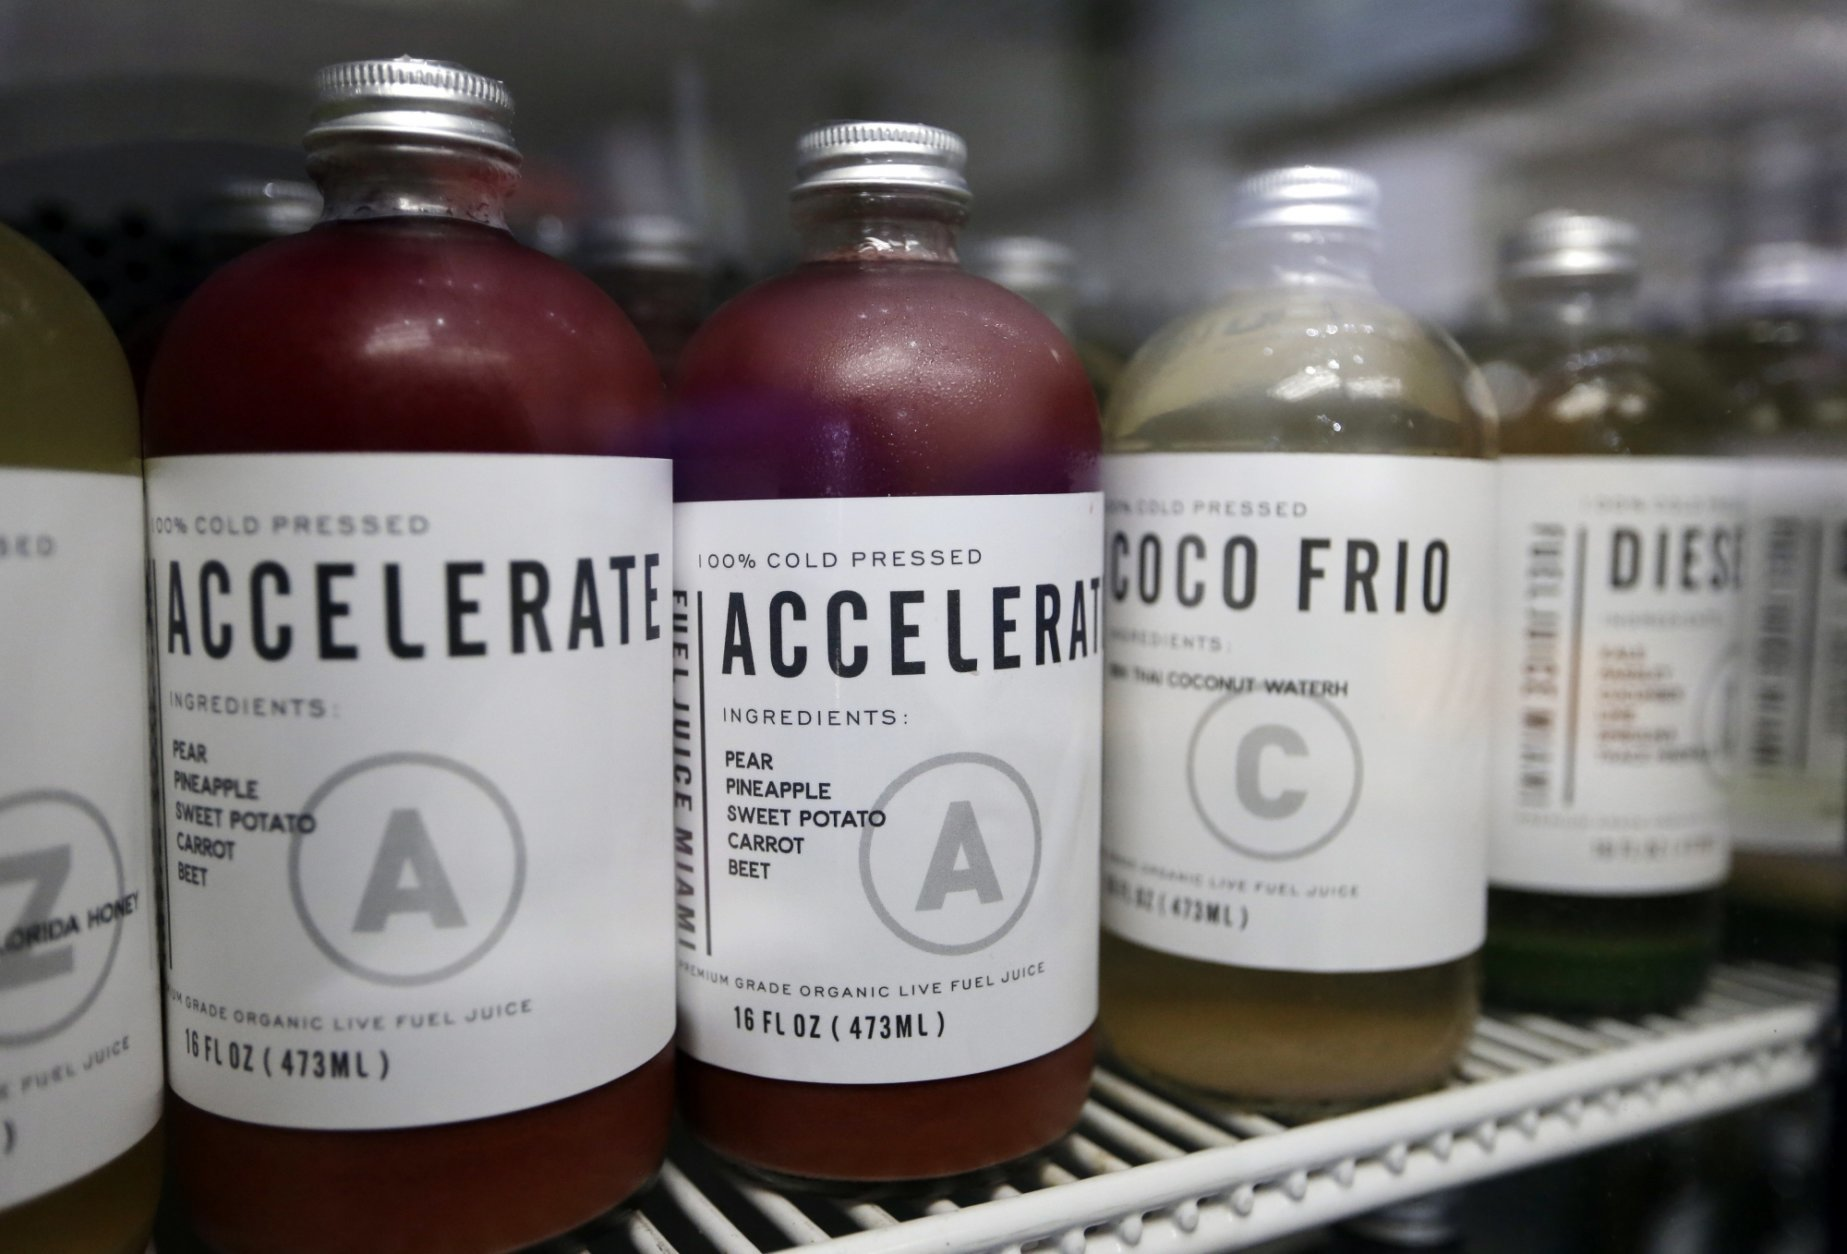 In this Tuesday, Aug. 14, 2018 photo, cold pressed juice pressed by Mendez Fuel is displayed at the Mendez Fuel convenience store in Miami. A new crop of niche stores aimed at millennials who can afford to pay more have completely overhauled store shelves, making gluten-free and organic products their staples, not just the side dish, along with compostable straws and on-demand delivery. (AP Photo/Lynne Sladky)